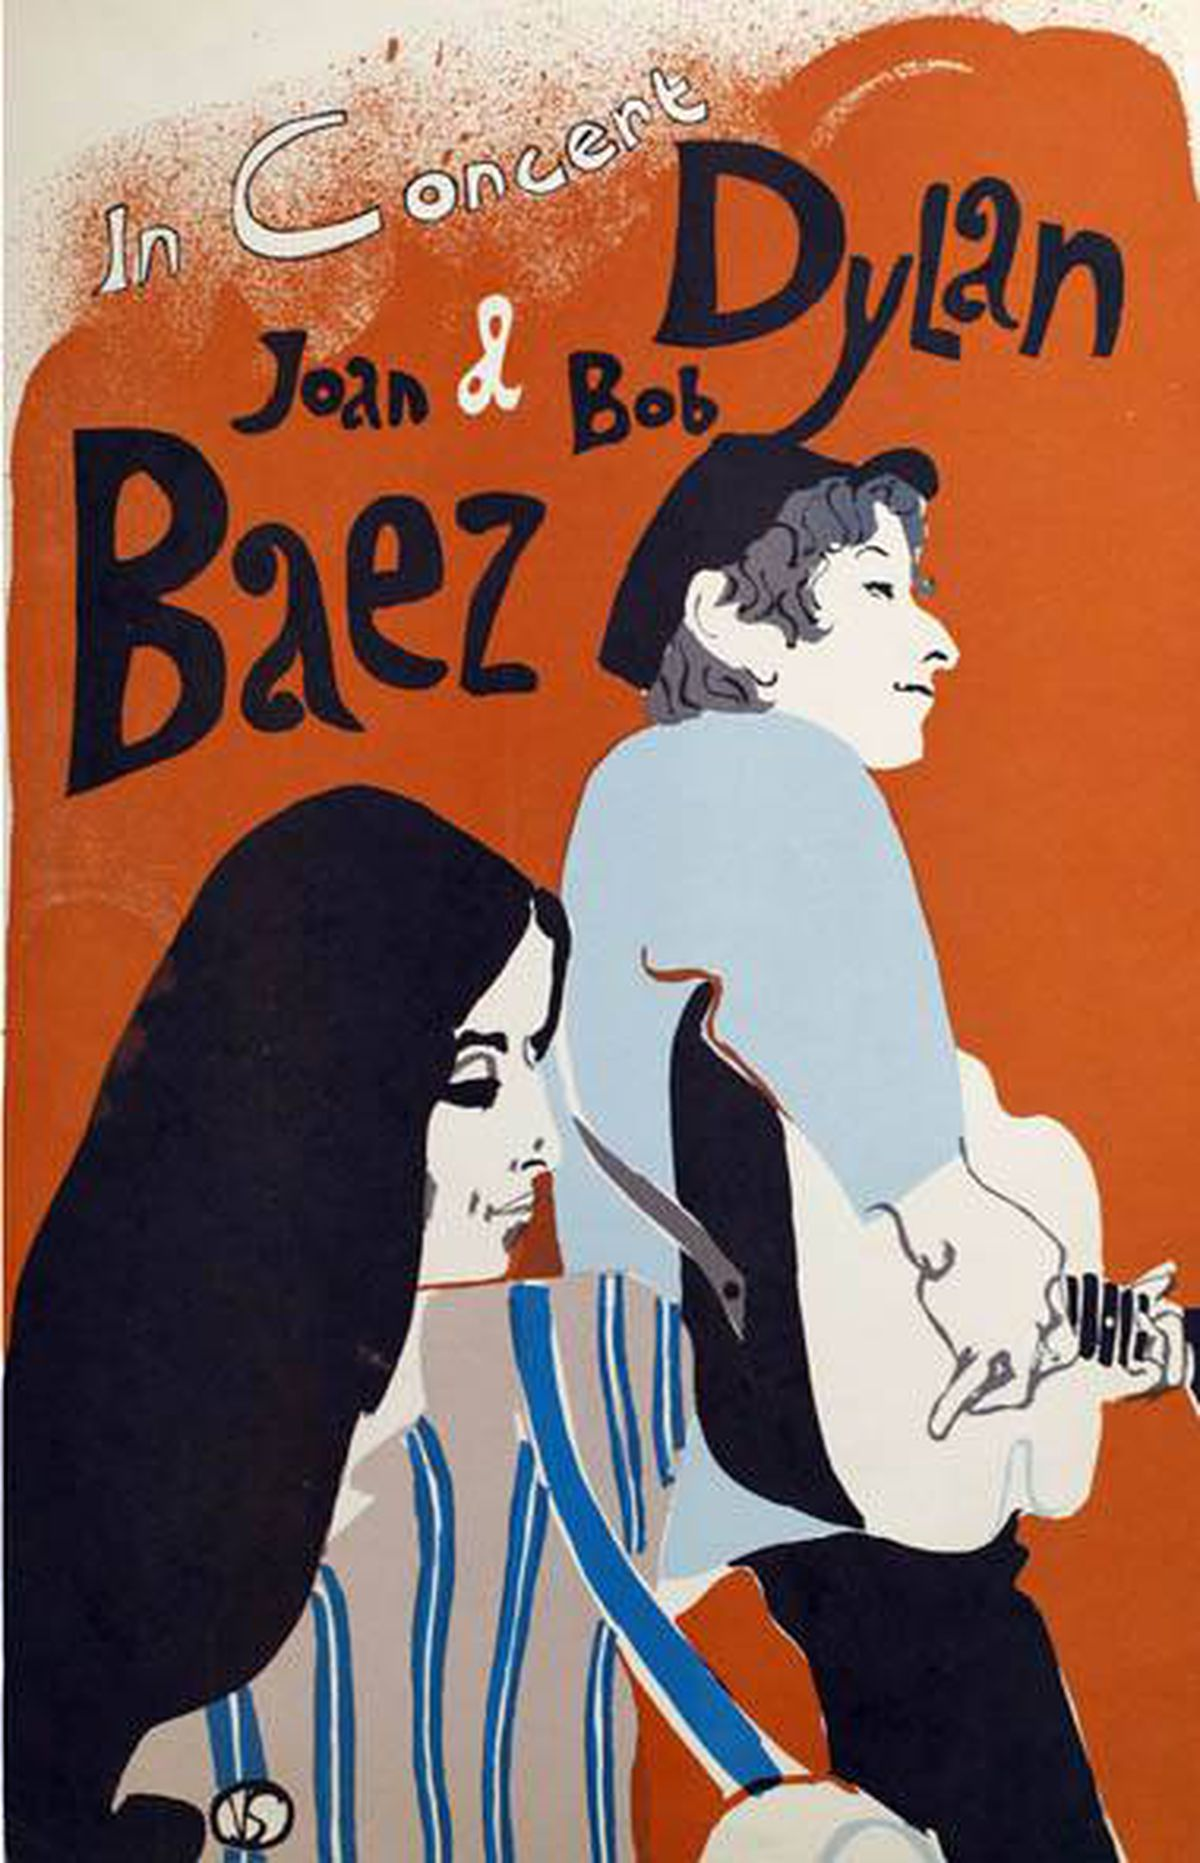 Joan Baez and Bob Dylan 1965 East Coast tour poster by artist Eric Von Schmidt. Part of a collection of rare and valuable posters gifted to the AGO, photographed on February 18, 2011.